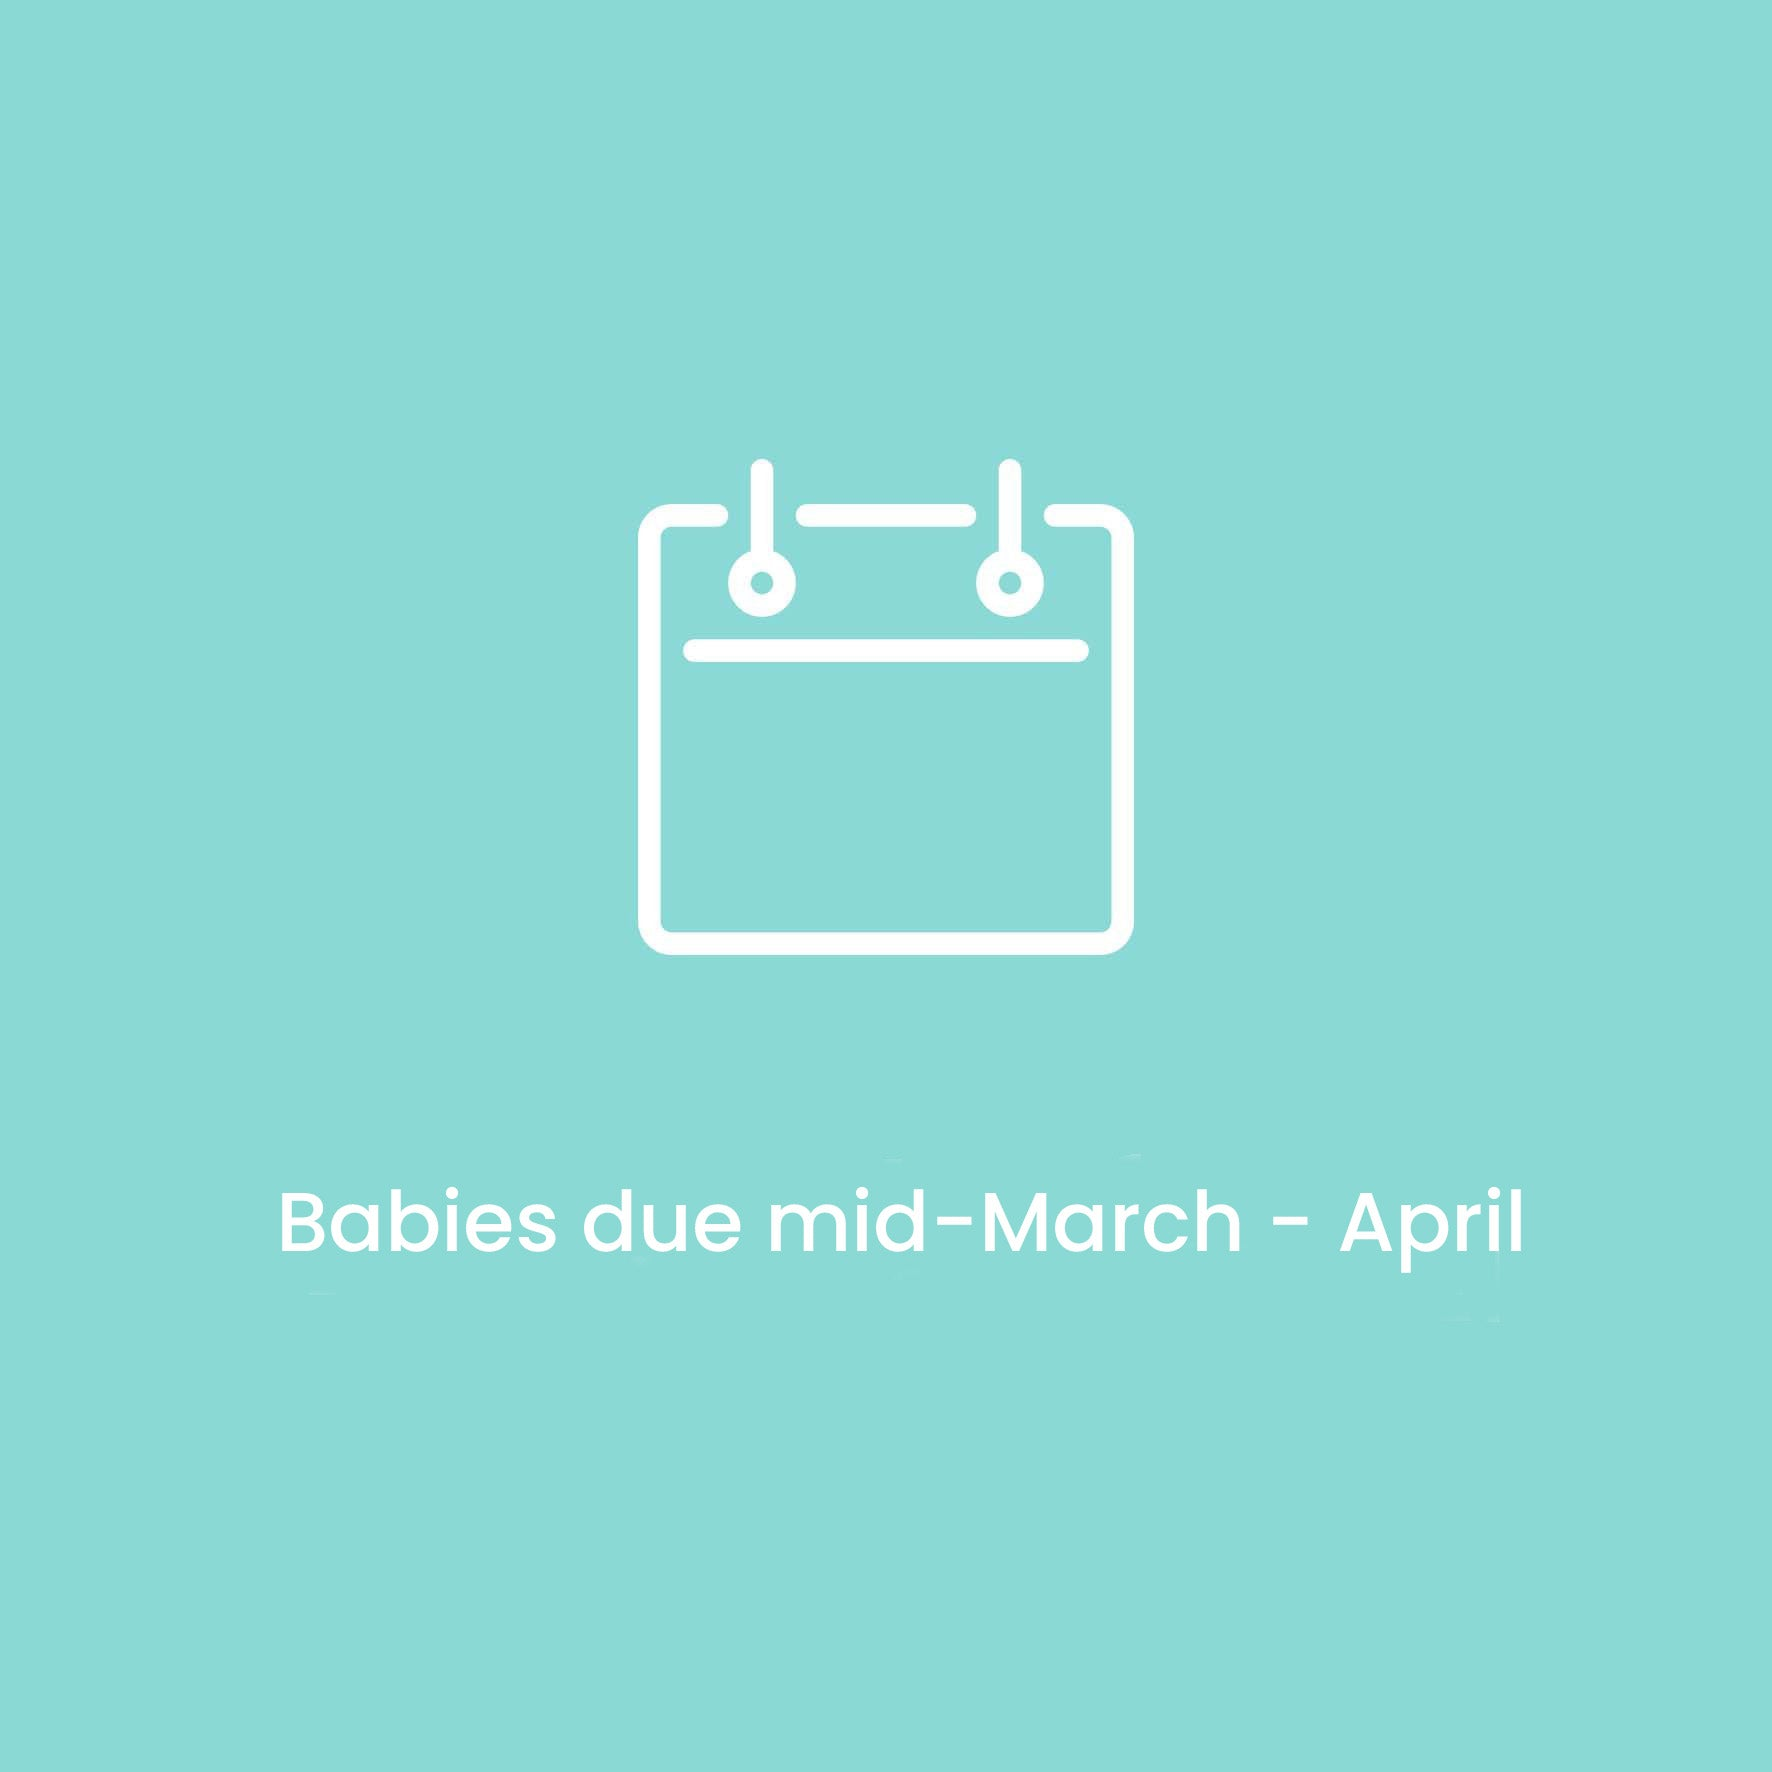 Babies due mid-March - April 2021